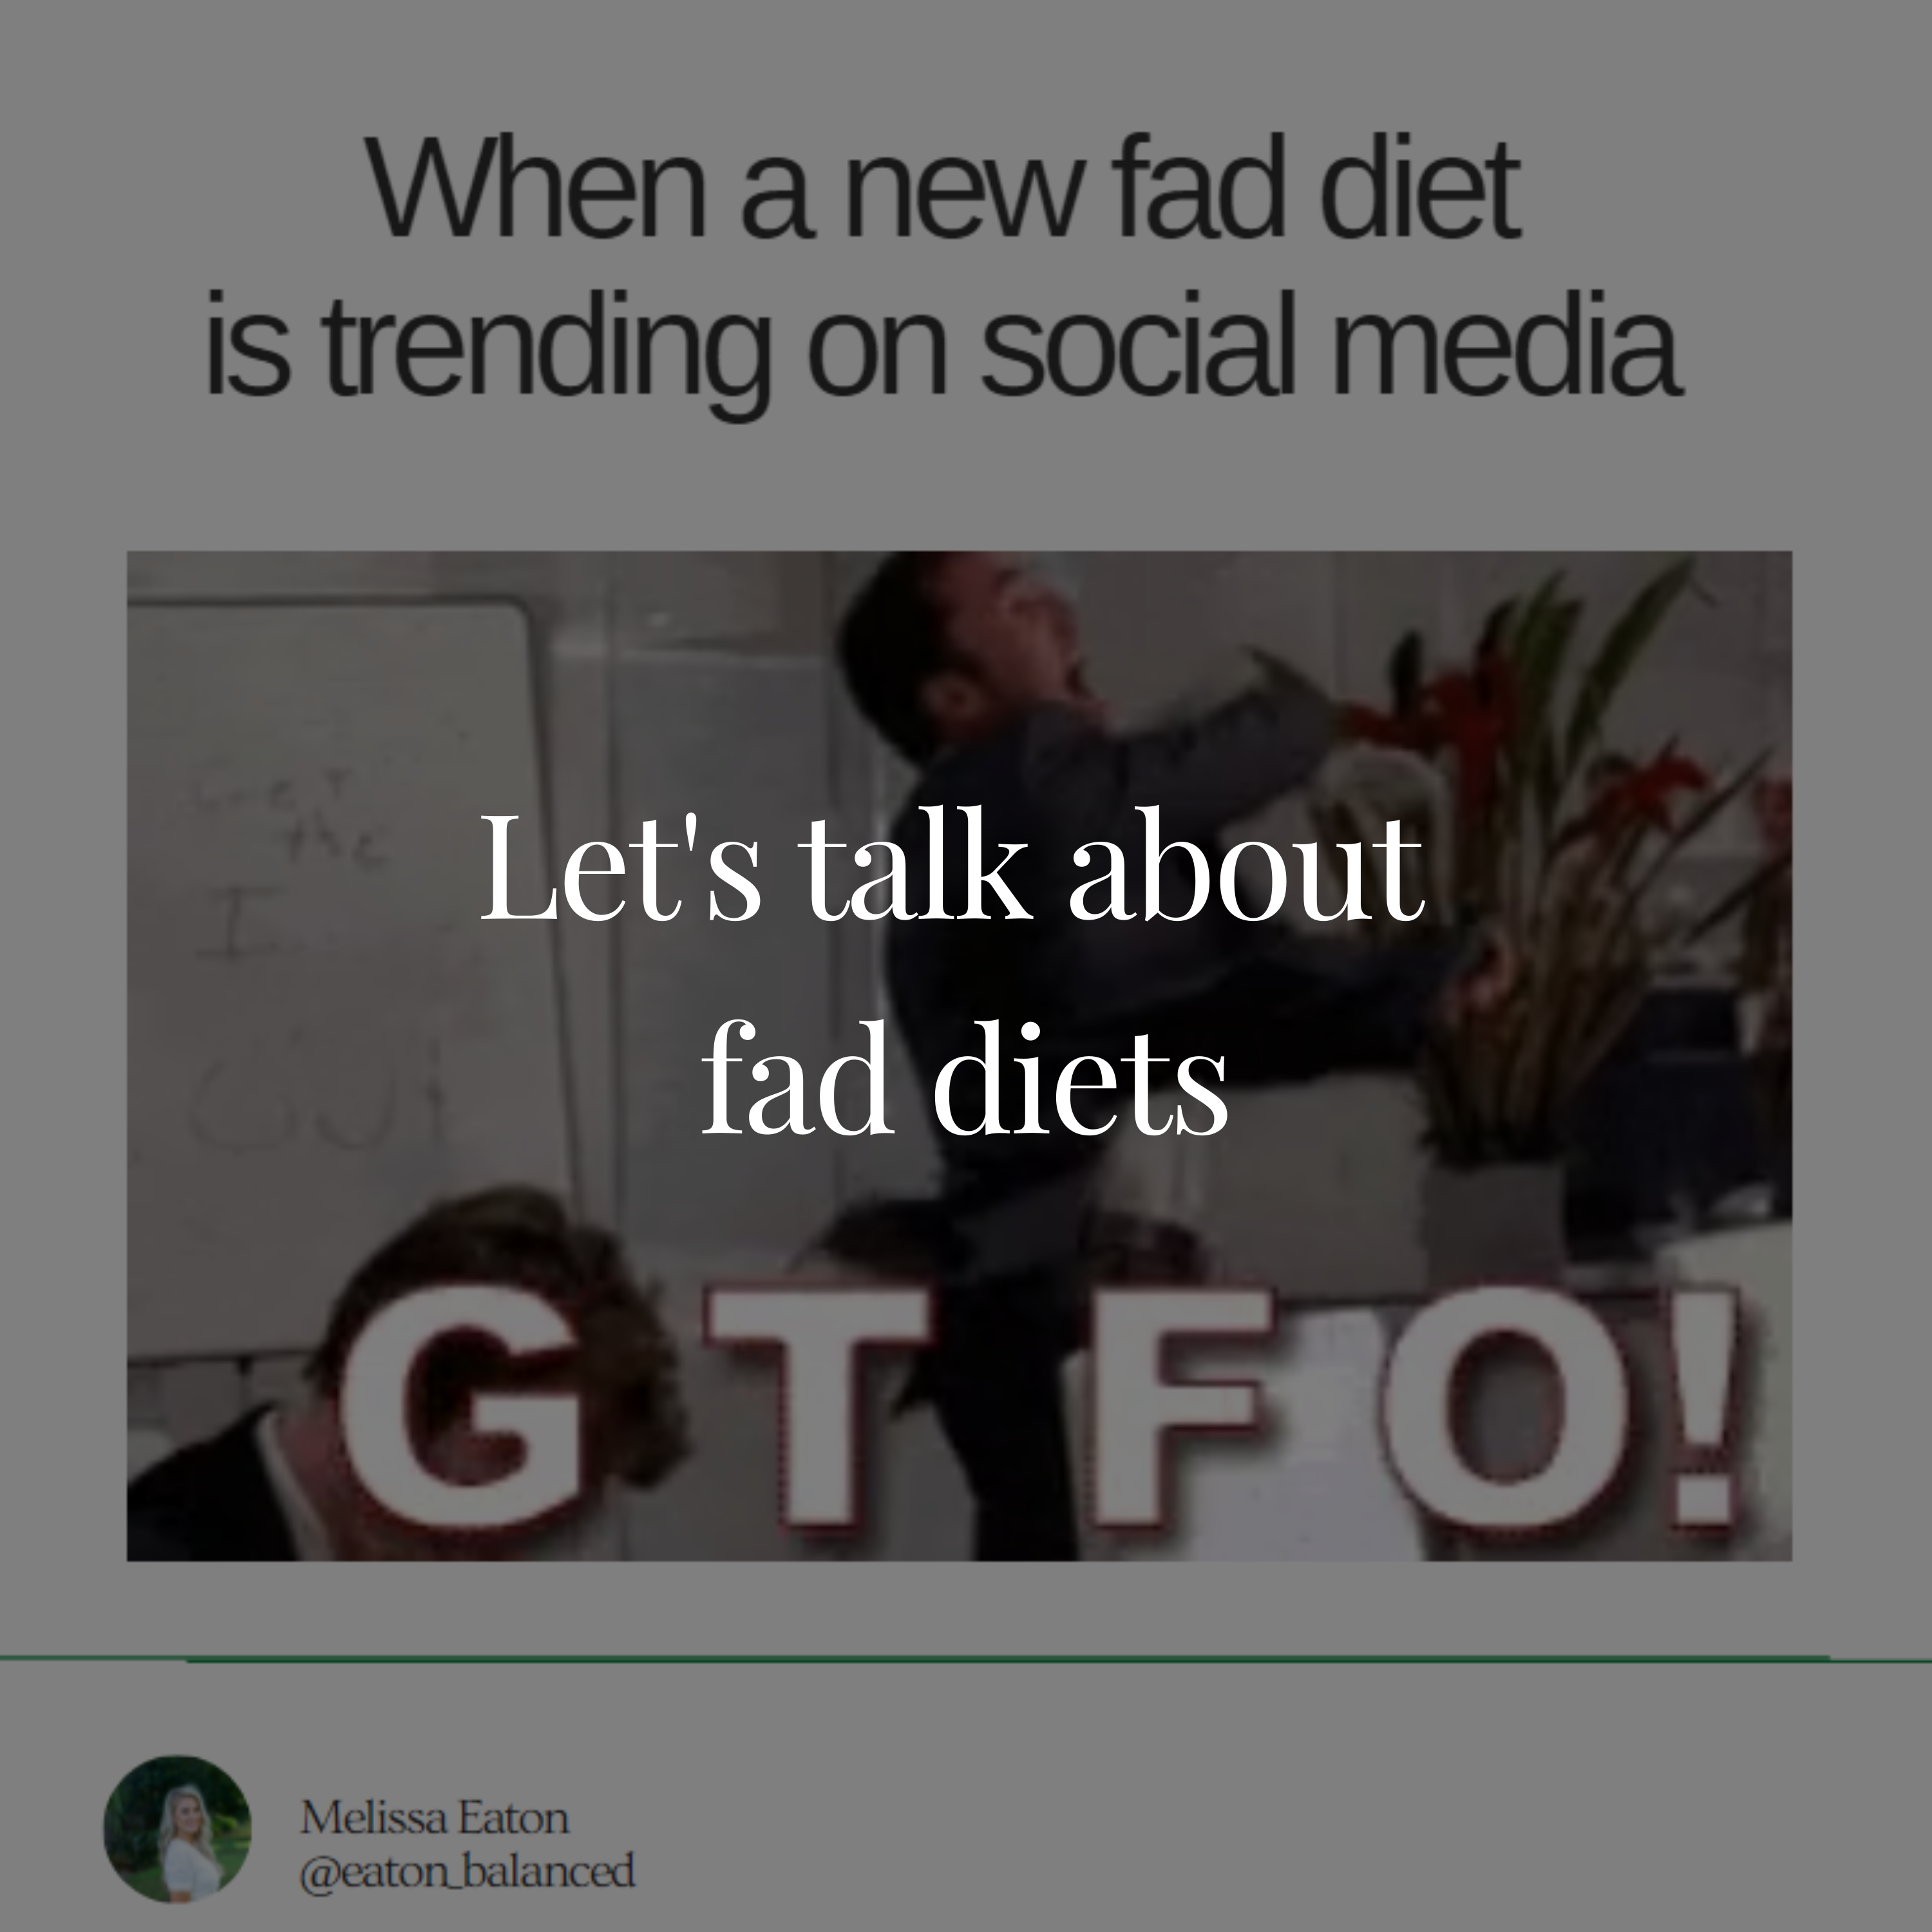 Let's talk about  fad diets